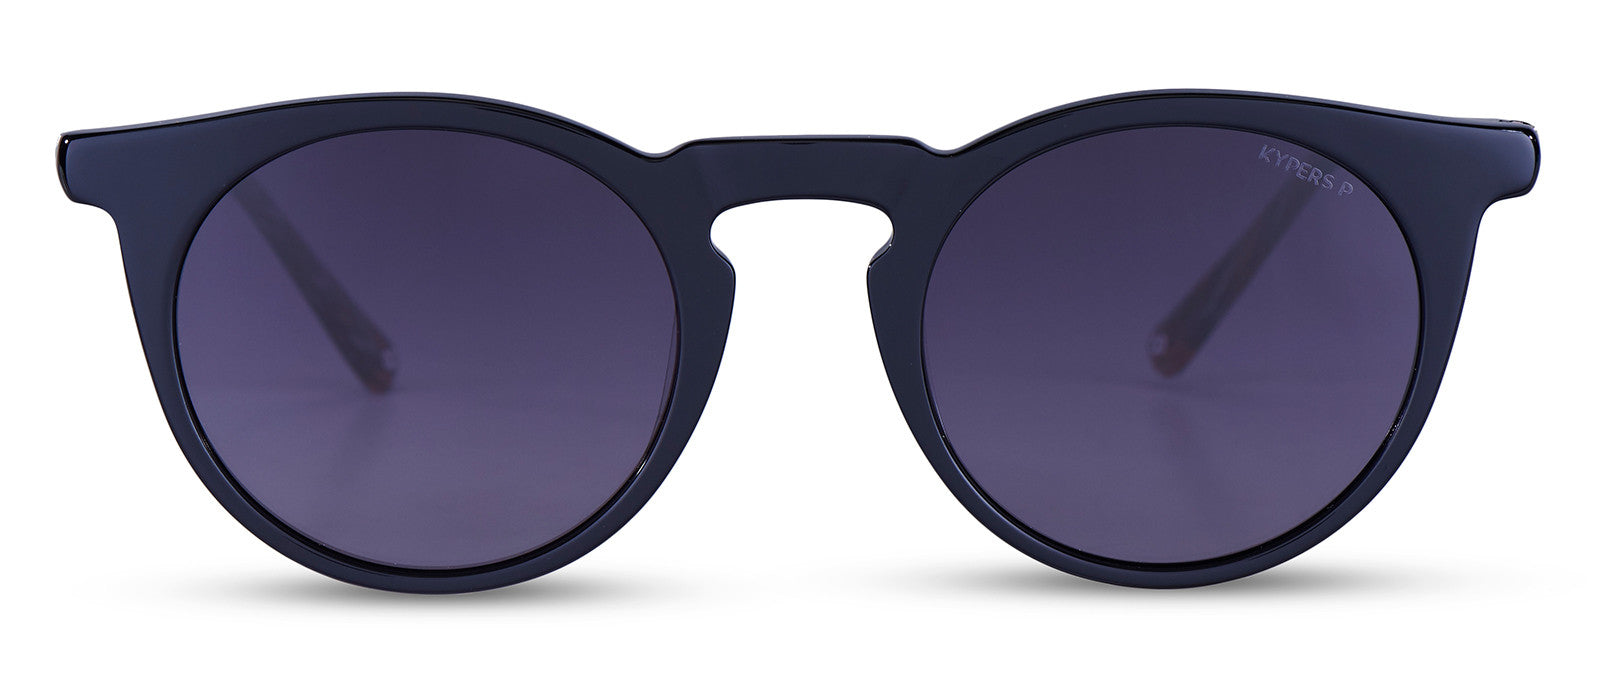 KYPERS sunglasses model HELEN HE001S with black frame and grey lens